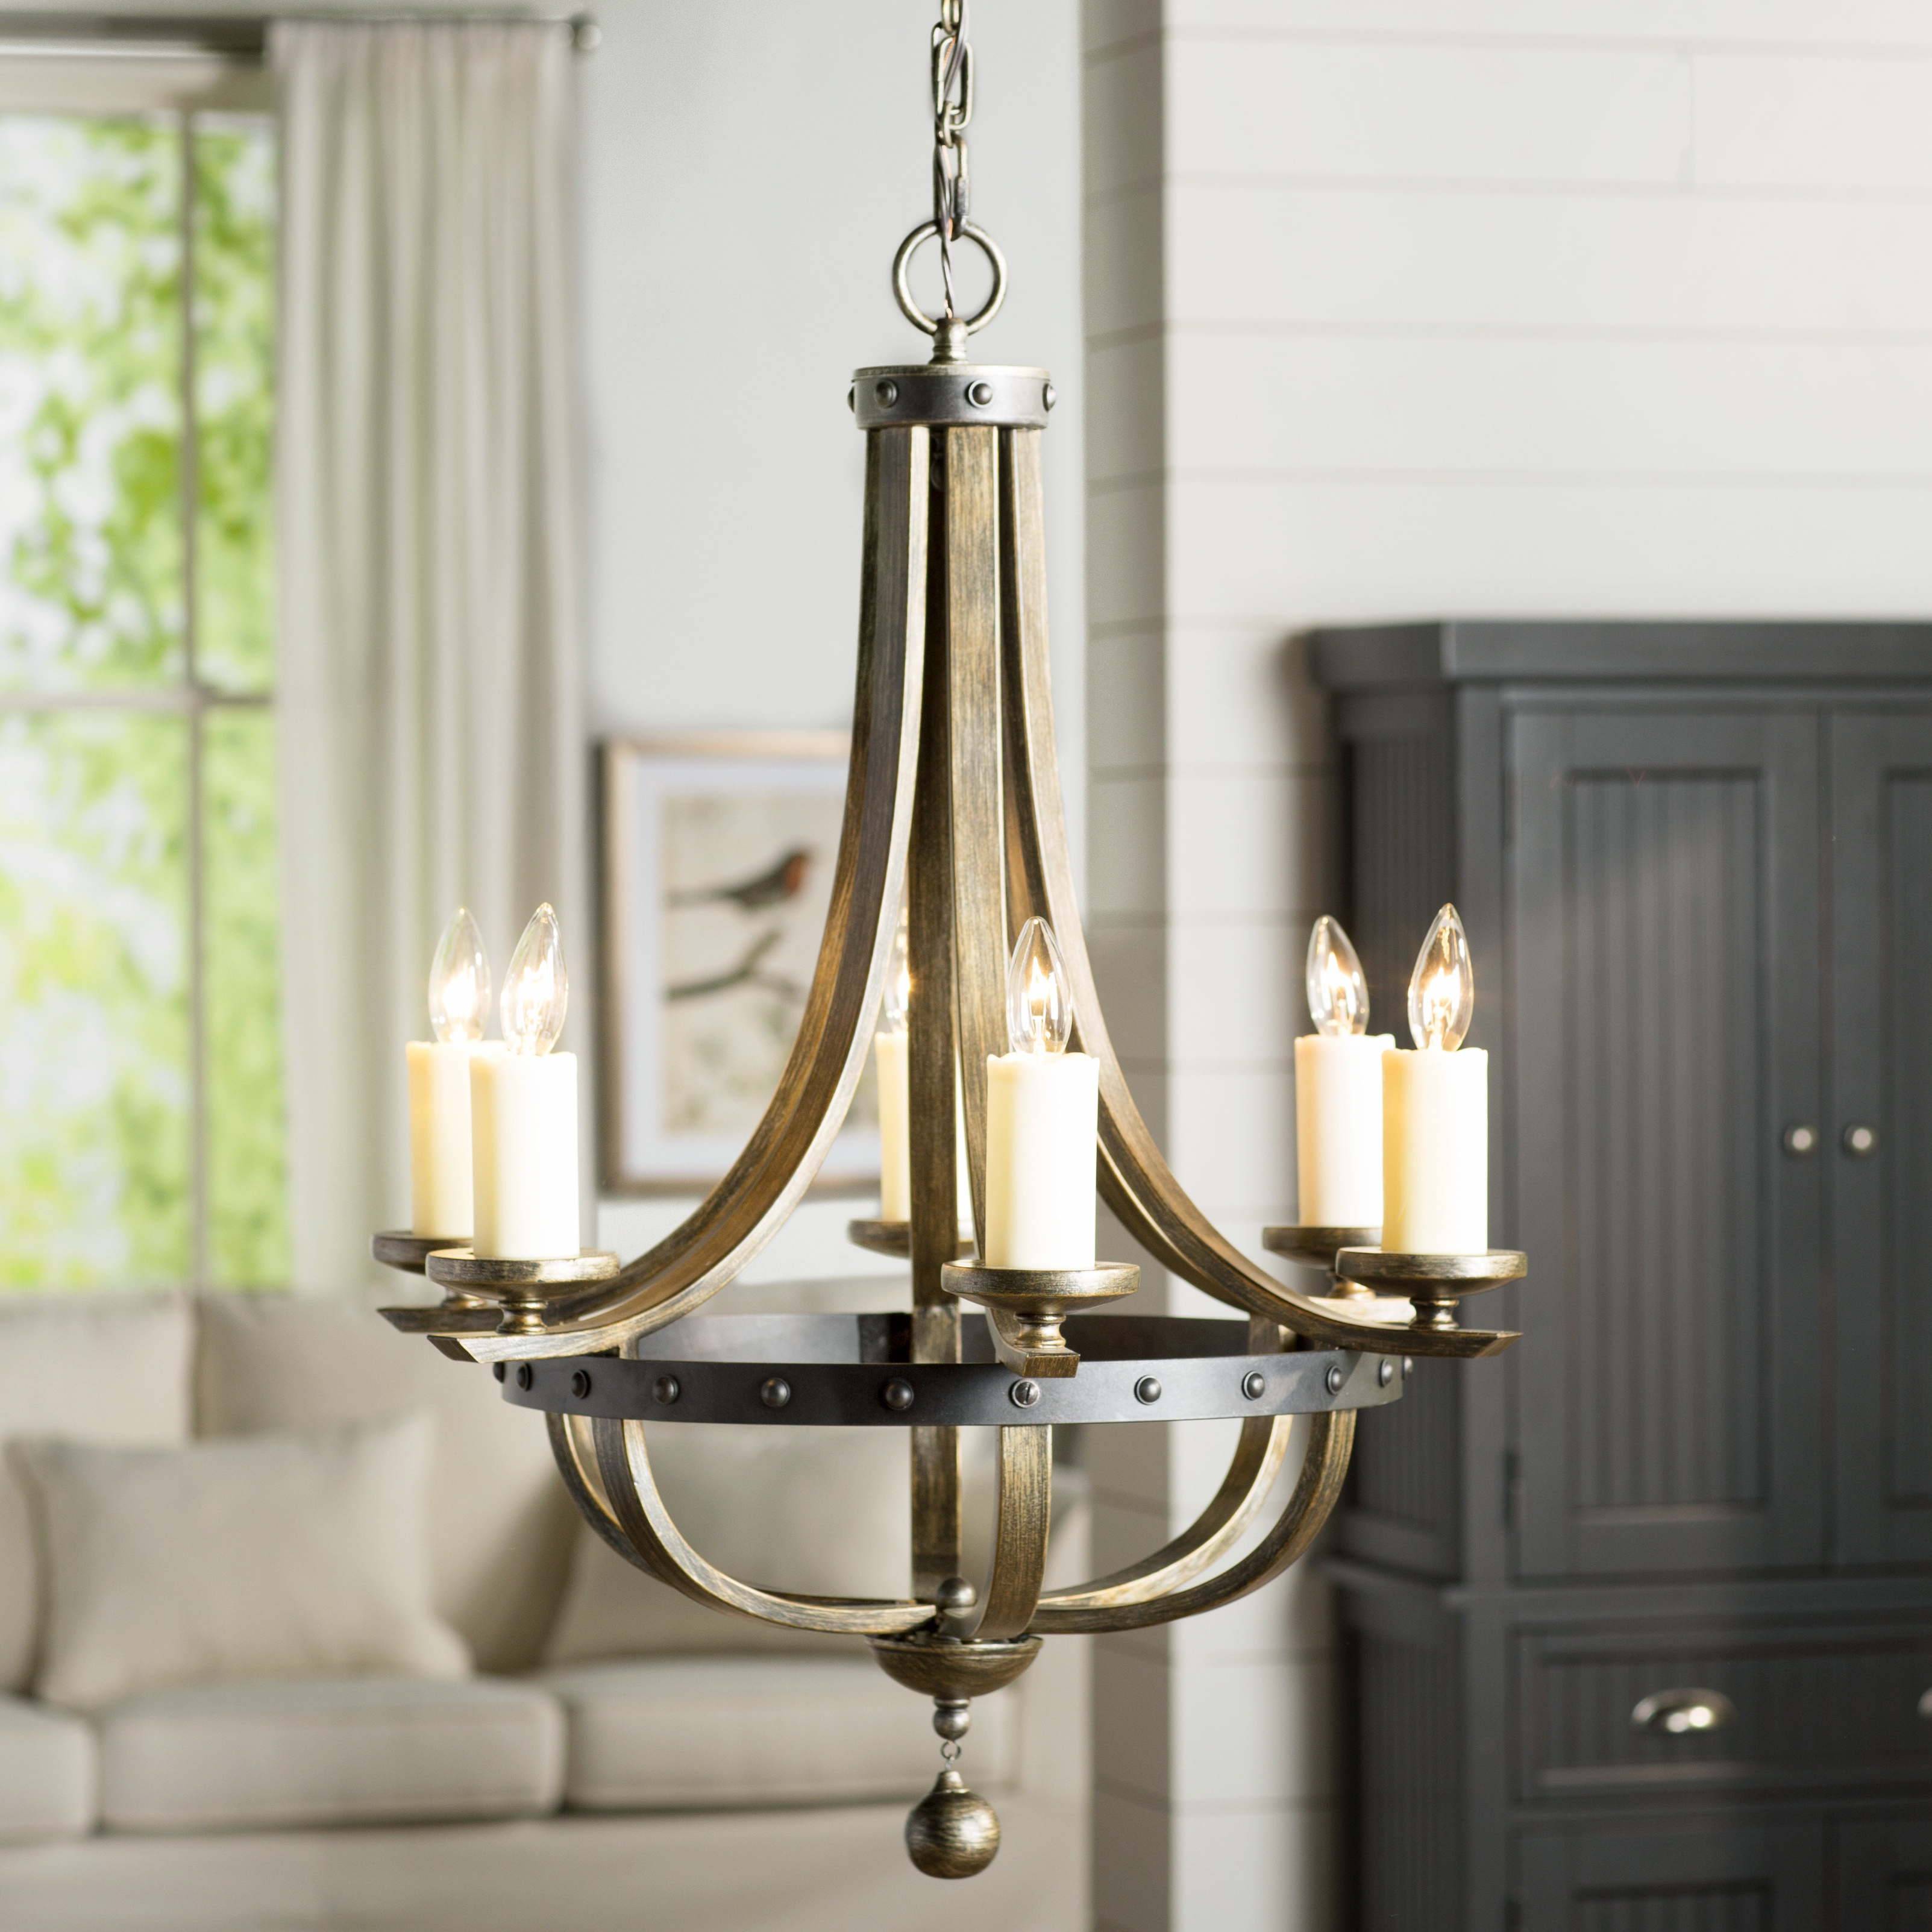 Phifer 6 Light Empire Chandeliers Throughout Most Current Betty Jo 6 Light Empire Chandelier (Gallery 9 of 20)